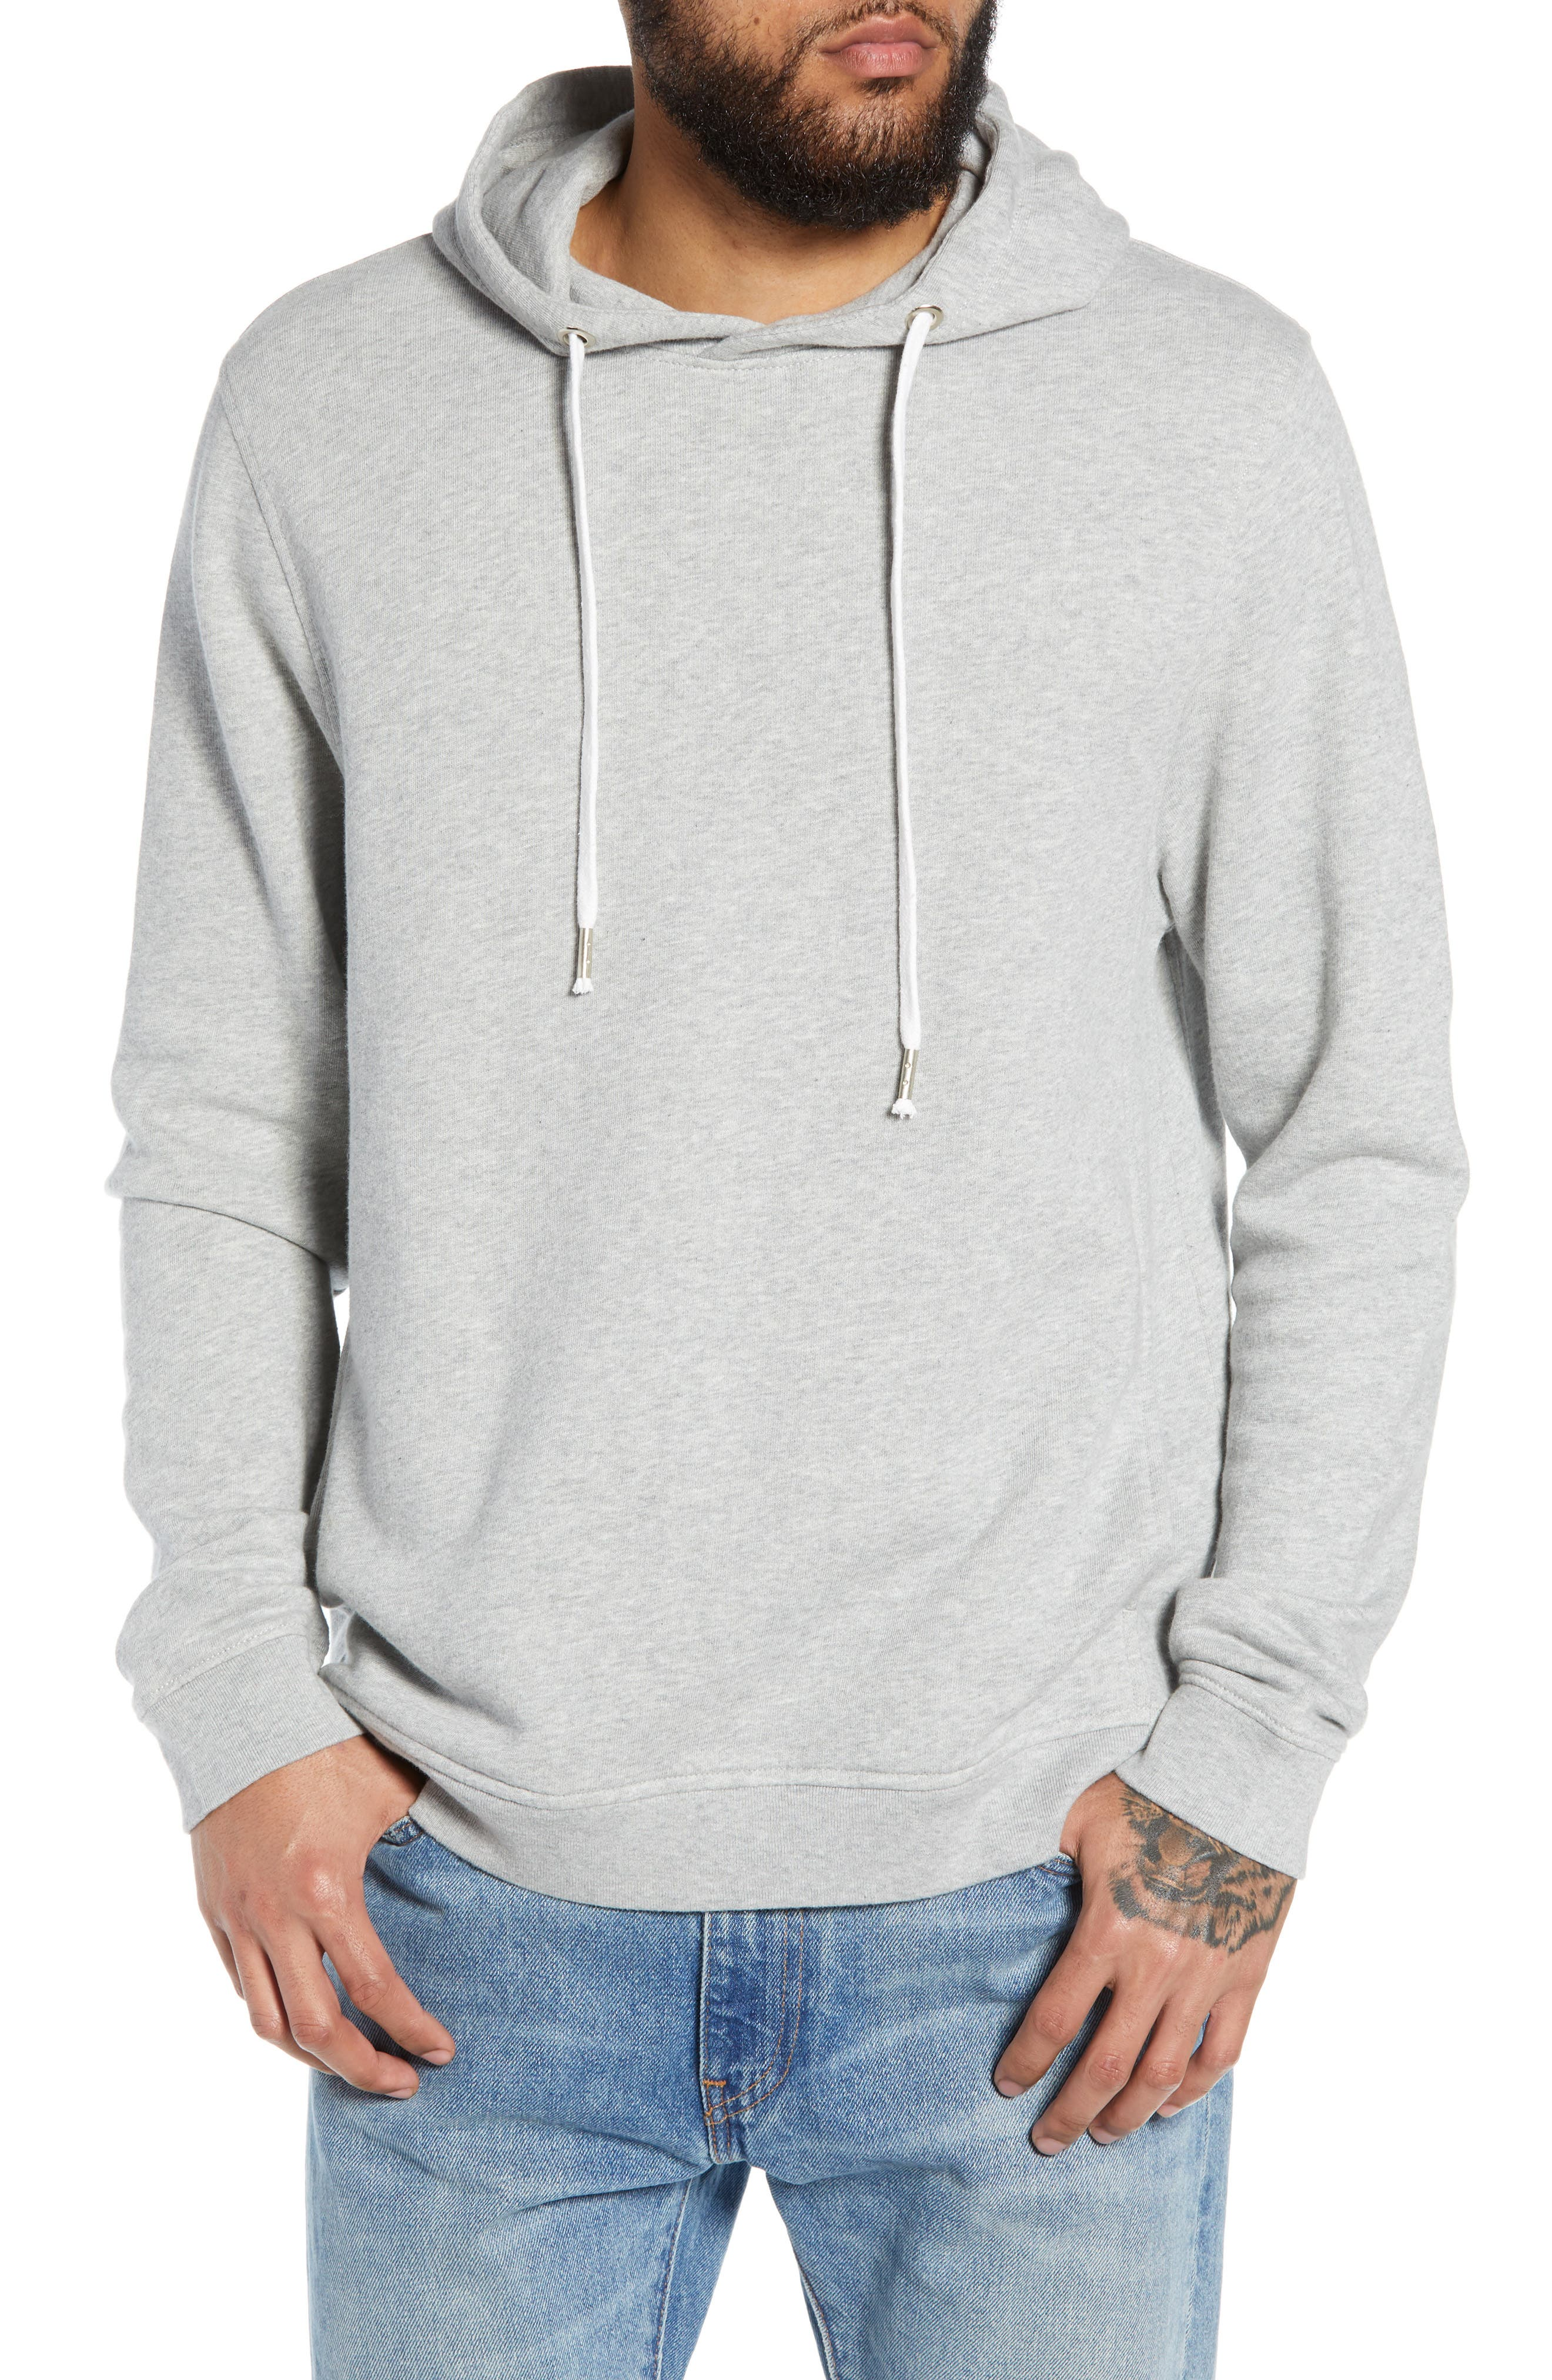 THE RAIL, Heather Sunfaded Hoodie, Main thumbnail 1, color, GREY ASH HEATHER